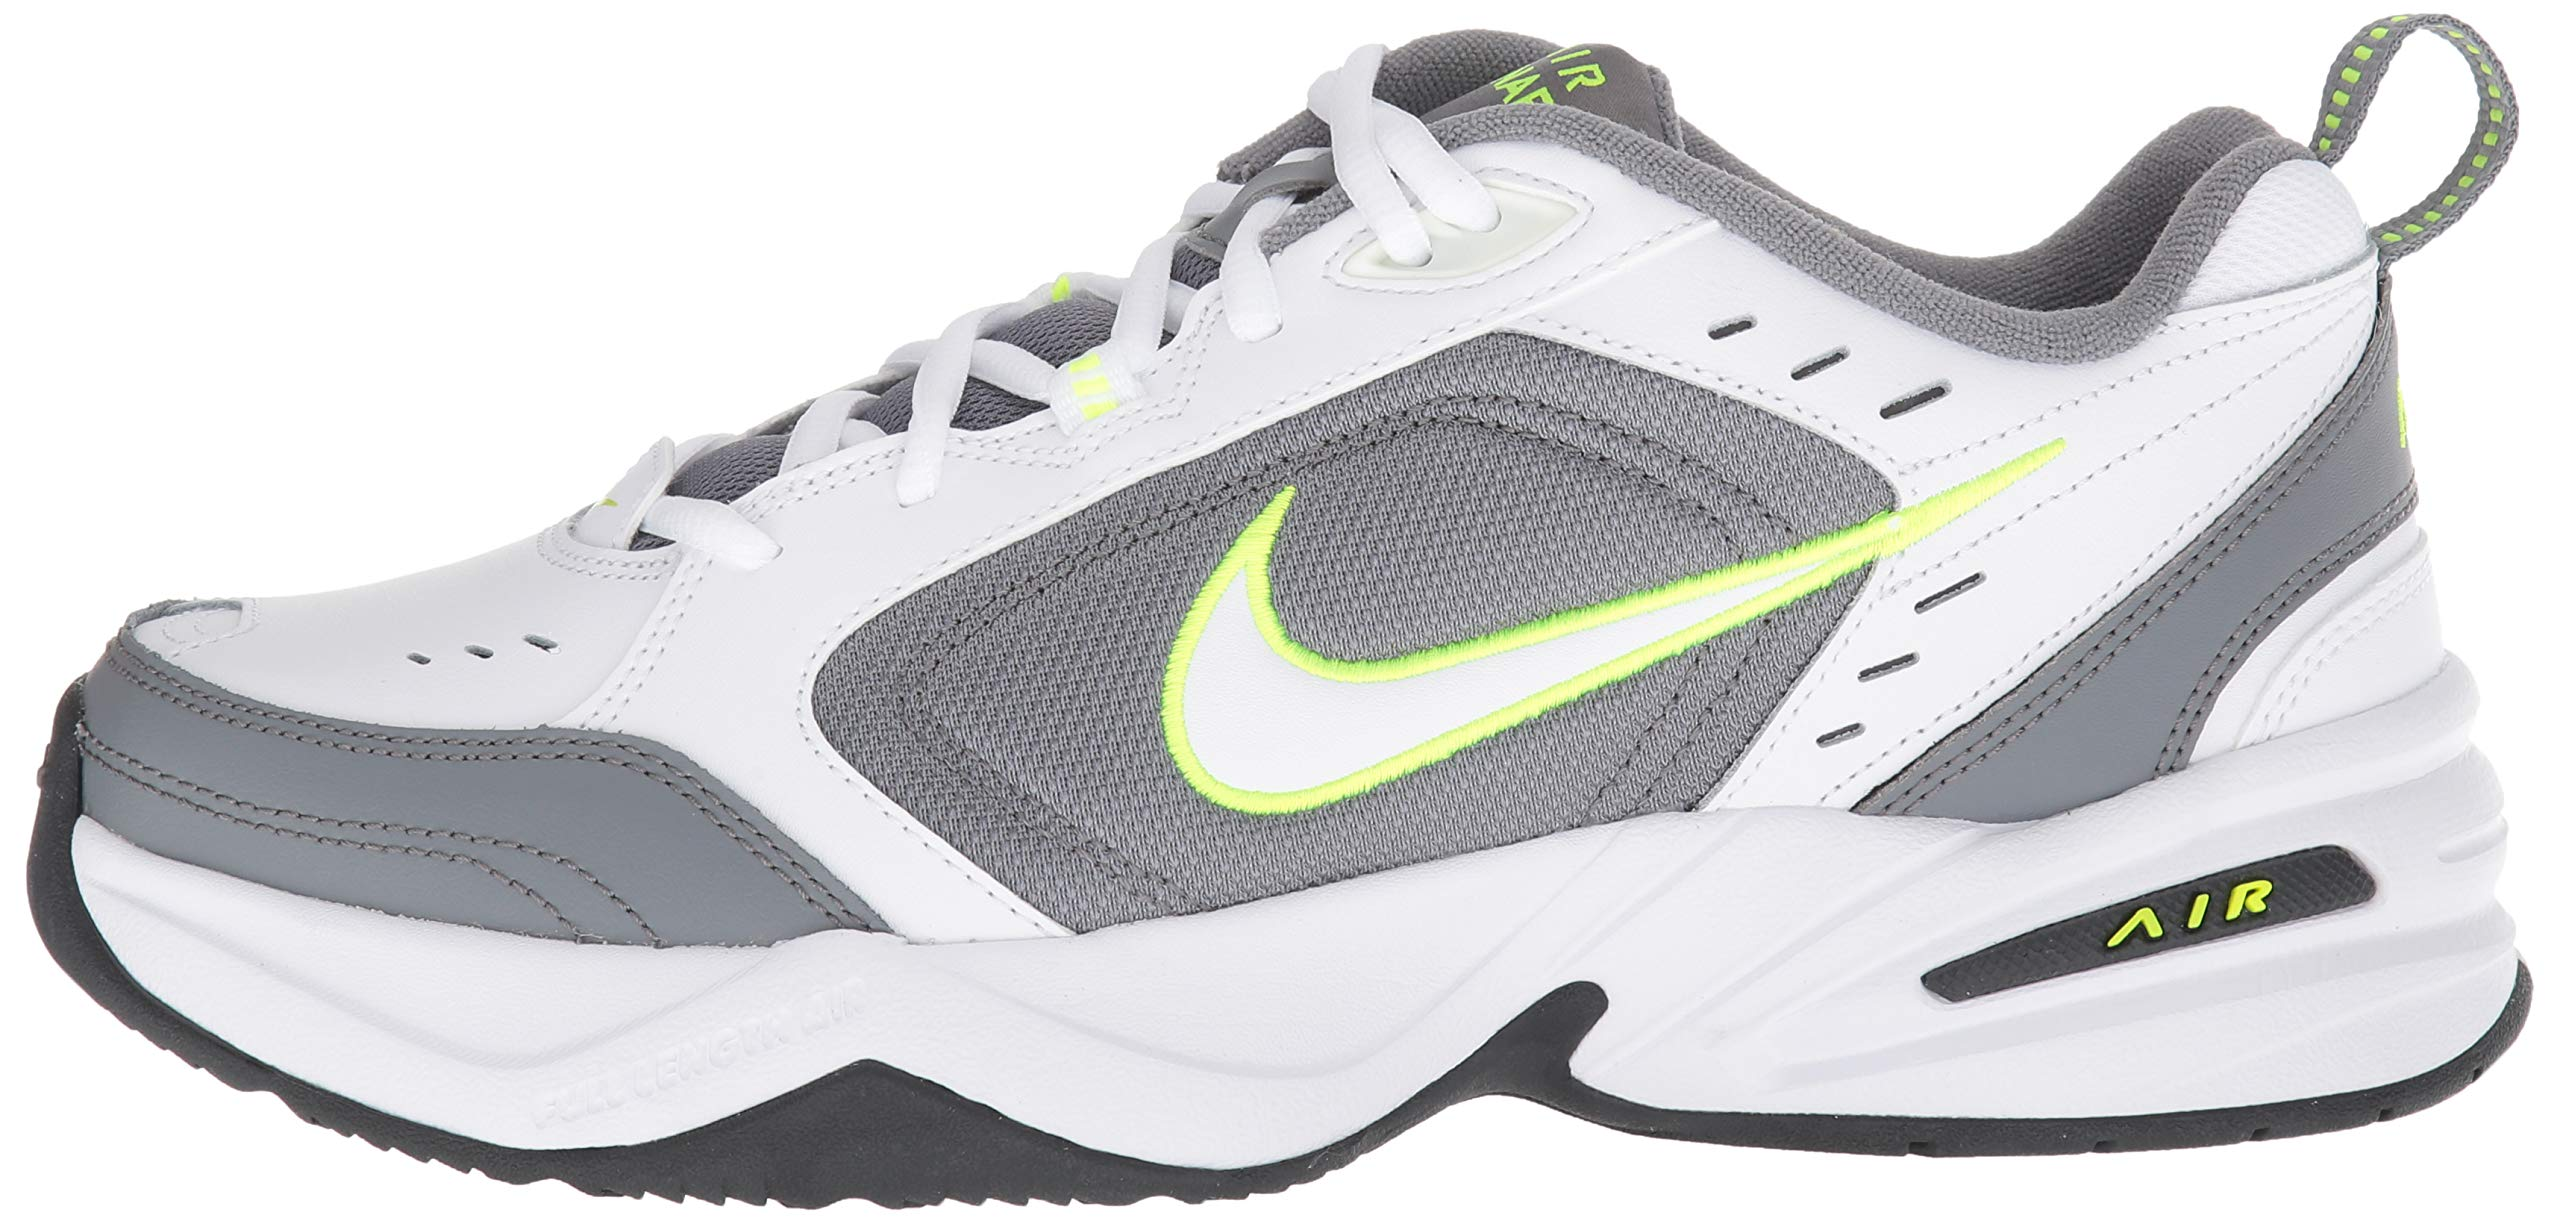 Nike Men's Air Monarch IV Cross Trainer, White-Cool Grey-Anthracite, 6.5 Regular US by Nike (Image #5)